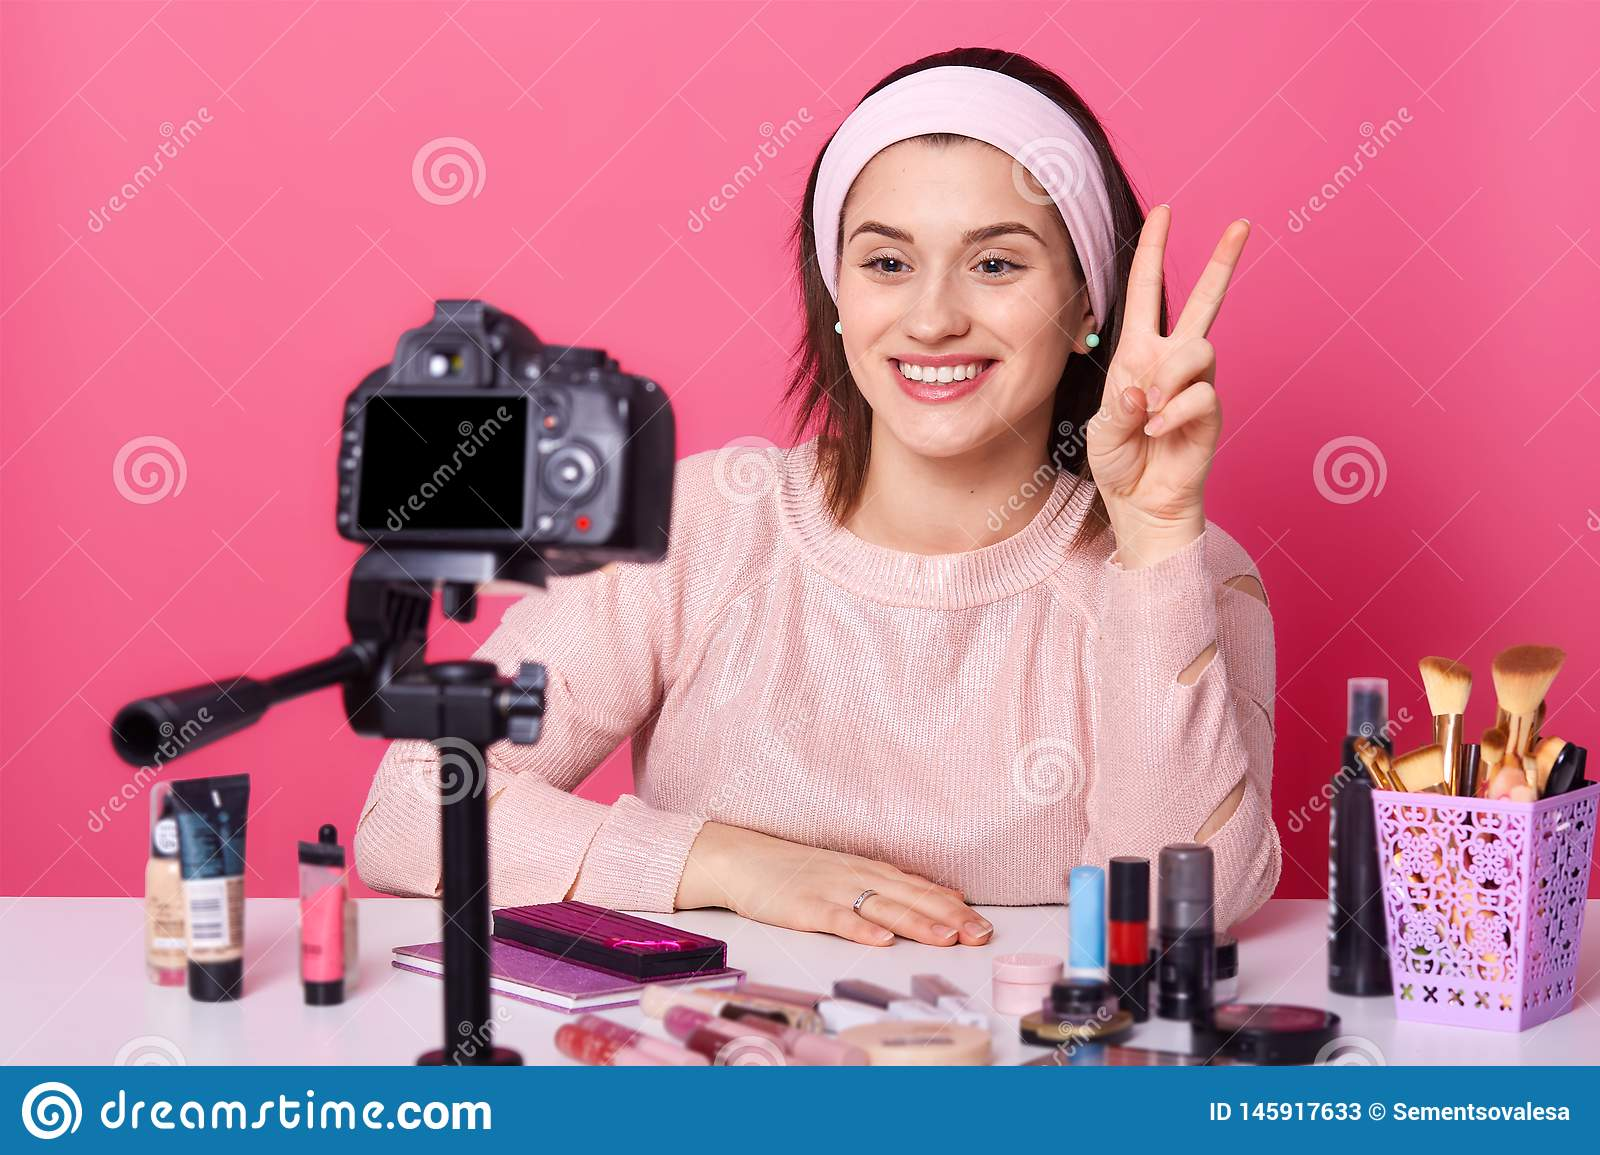 Portrait of young brunette blogger taking video via digital camera and showing peace sign. Cheerful model posing in studio on pink